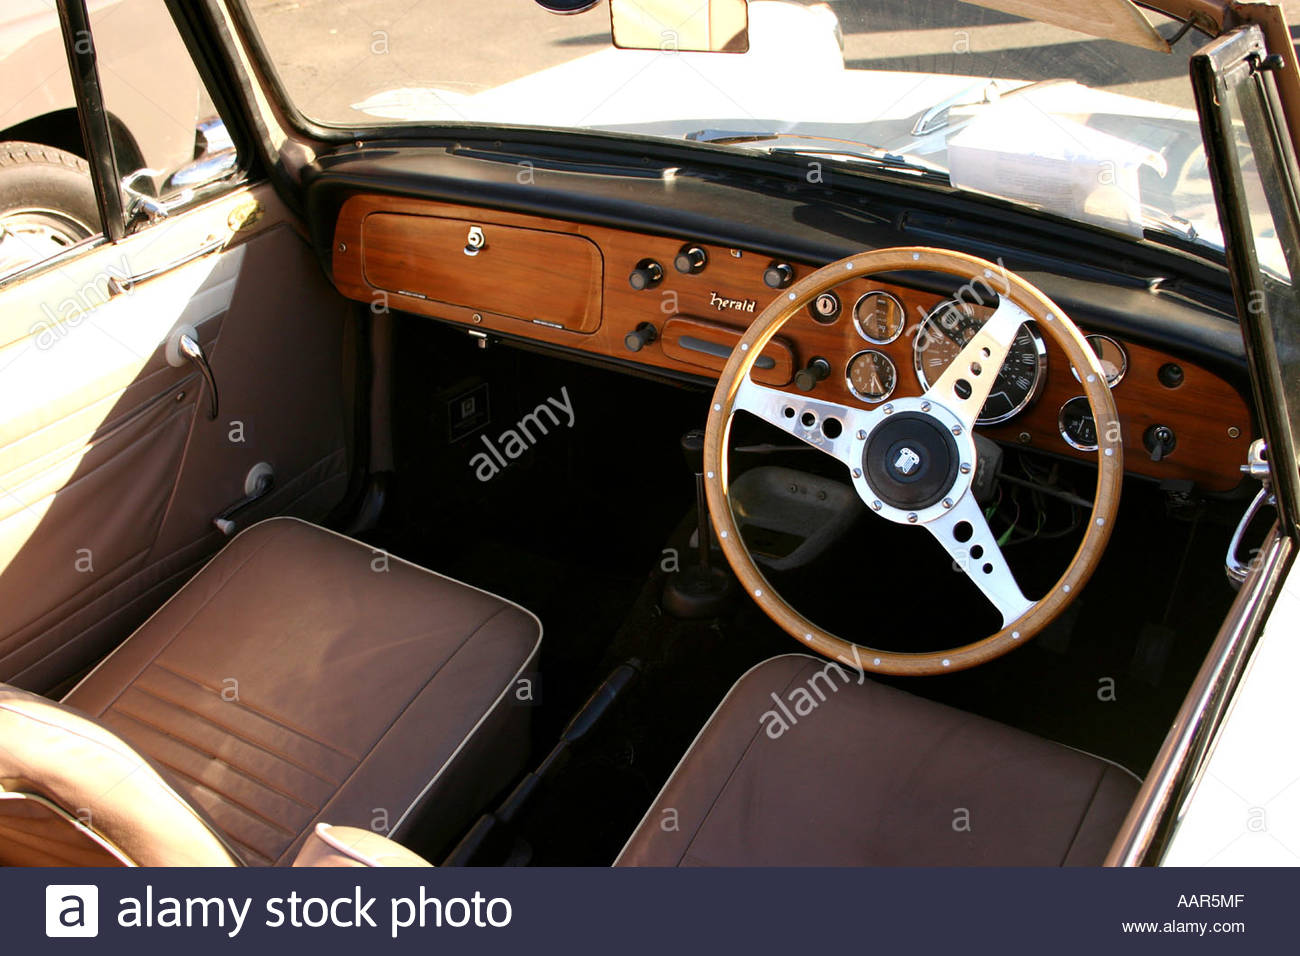 1960 triumph herald convertable interior classic car on display at stock photo royalty free. Black Bedroom Furniture Sets. Home Design Ideas